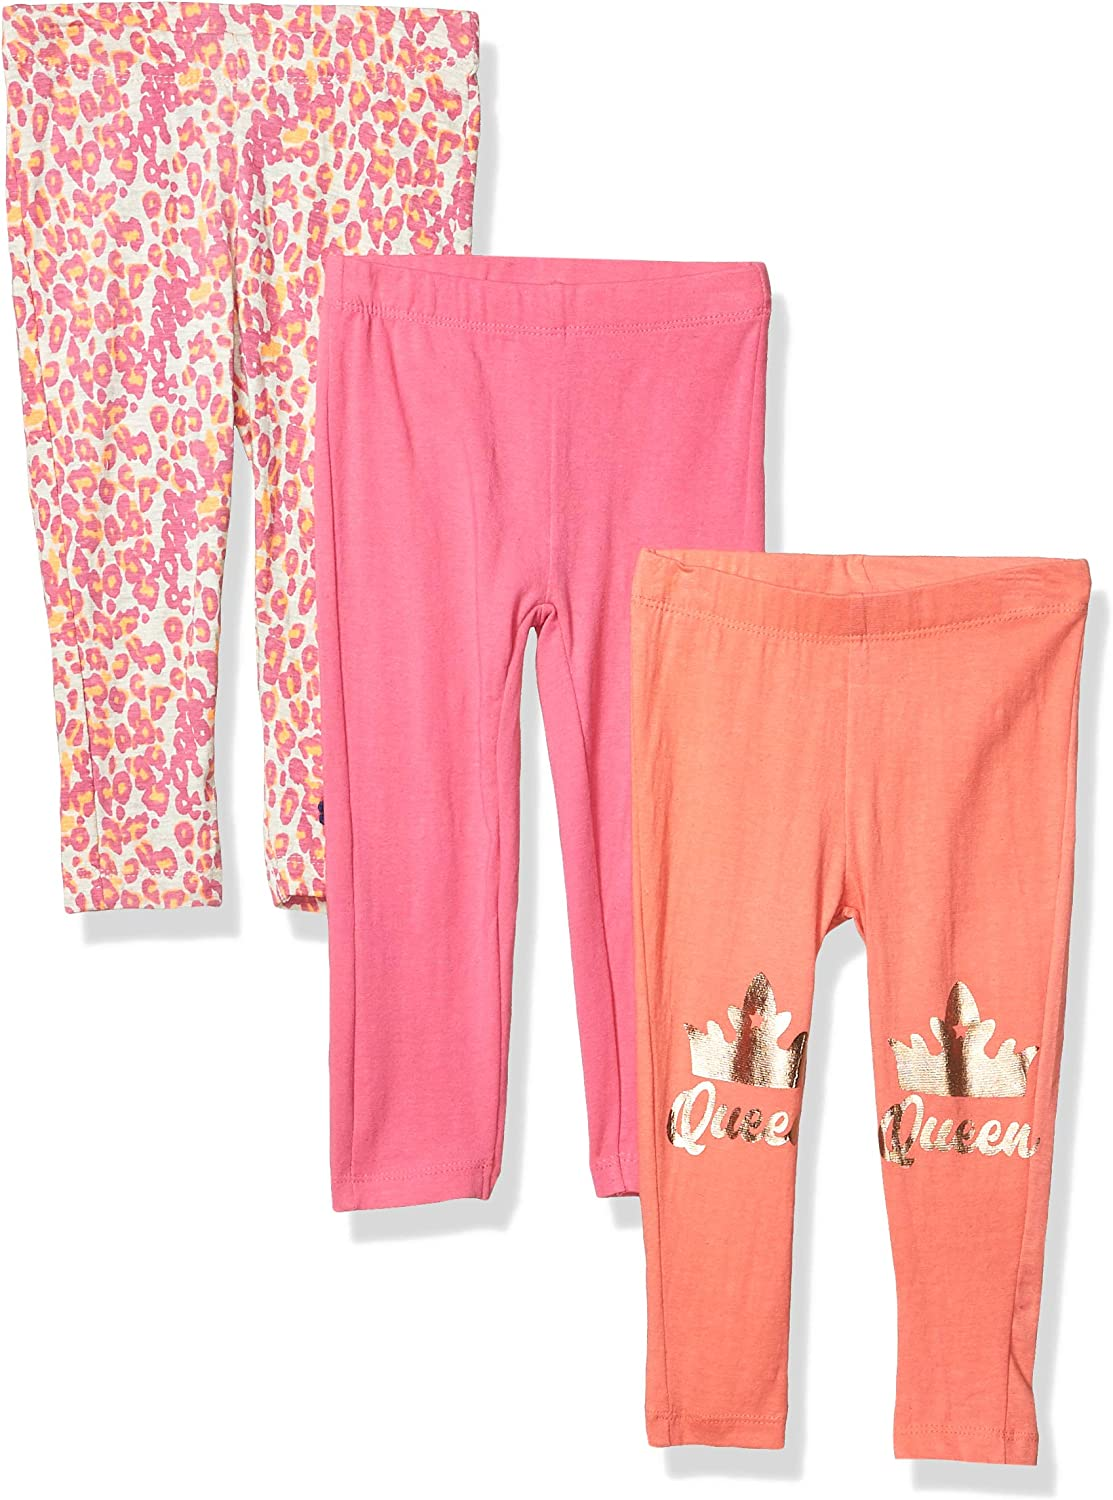 Limited Finally popular brand Limited time cheap sale Too Girls' Leggings